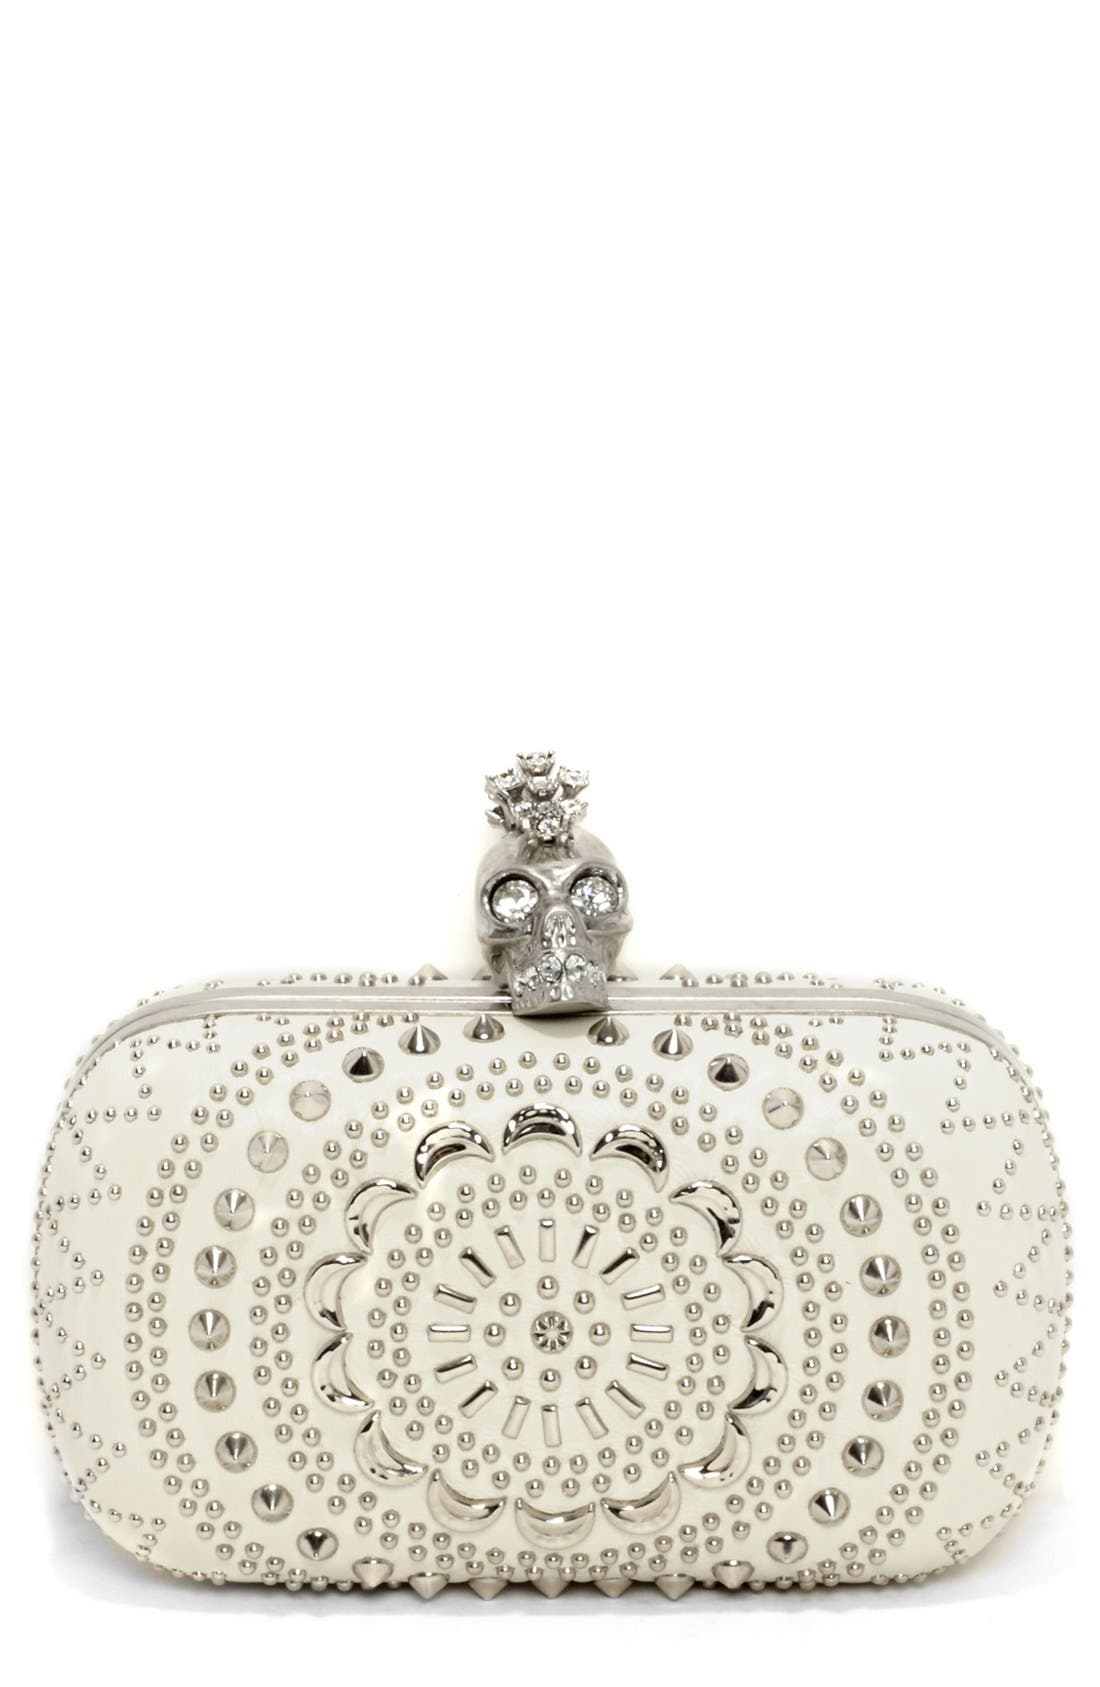 Alternate Image 1 Selected - Alexander McQueen 'Punk Skull' Clutch